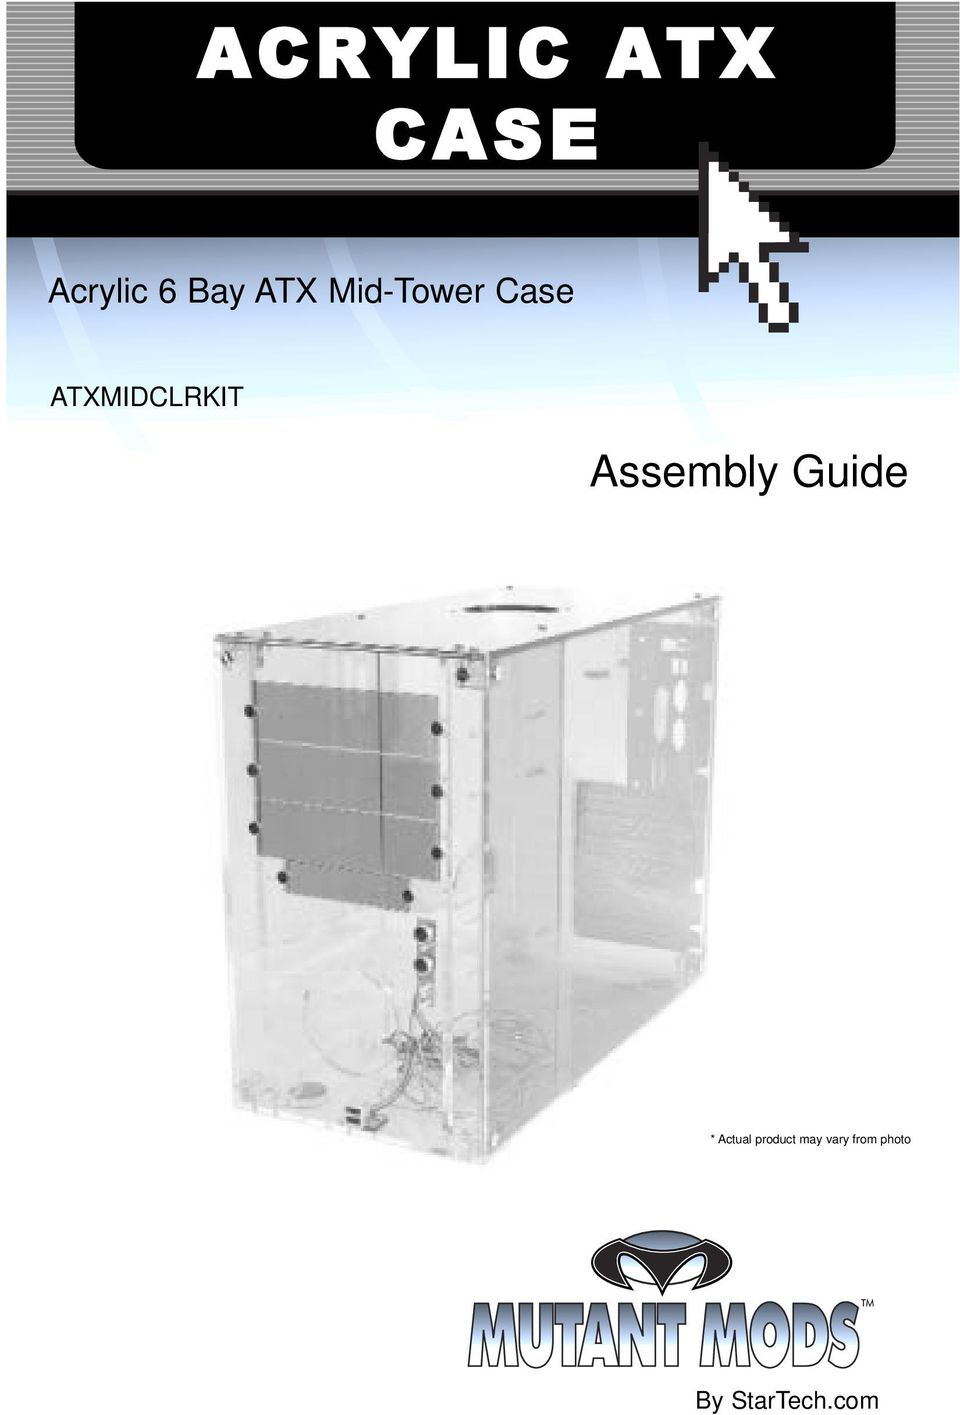 Assembly Guide * Actual product